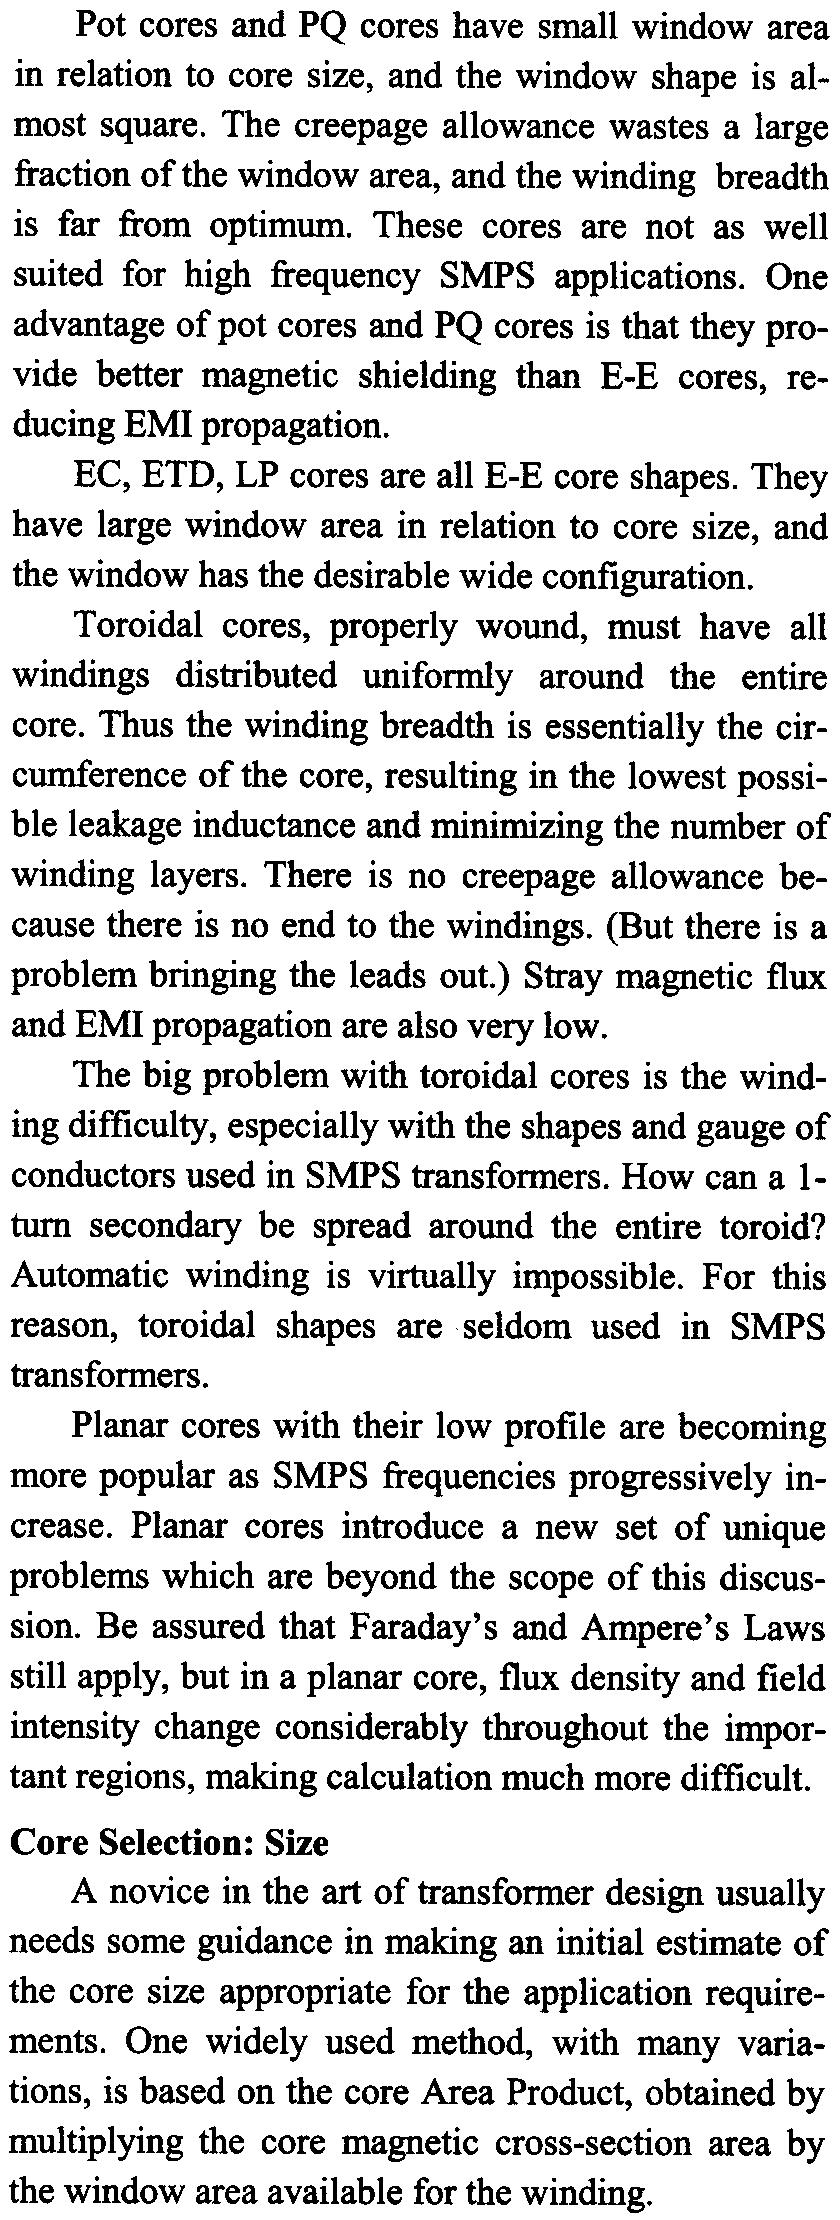 Magnetics Design For Switching Power Supplies Lloyd H Dixon Pdf Magnetic Circuit Of An Inductor With Ungapped Core One Advantage Pot Cores And Pq Is That They Provide Better Shielding Than